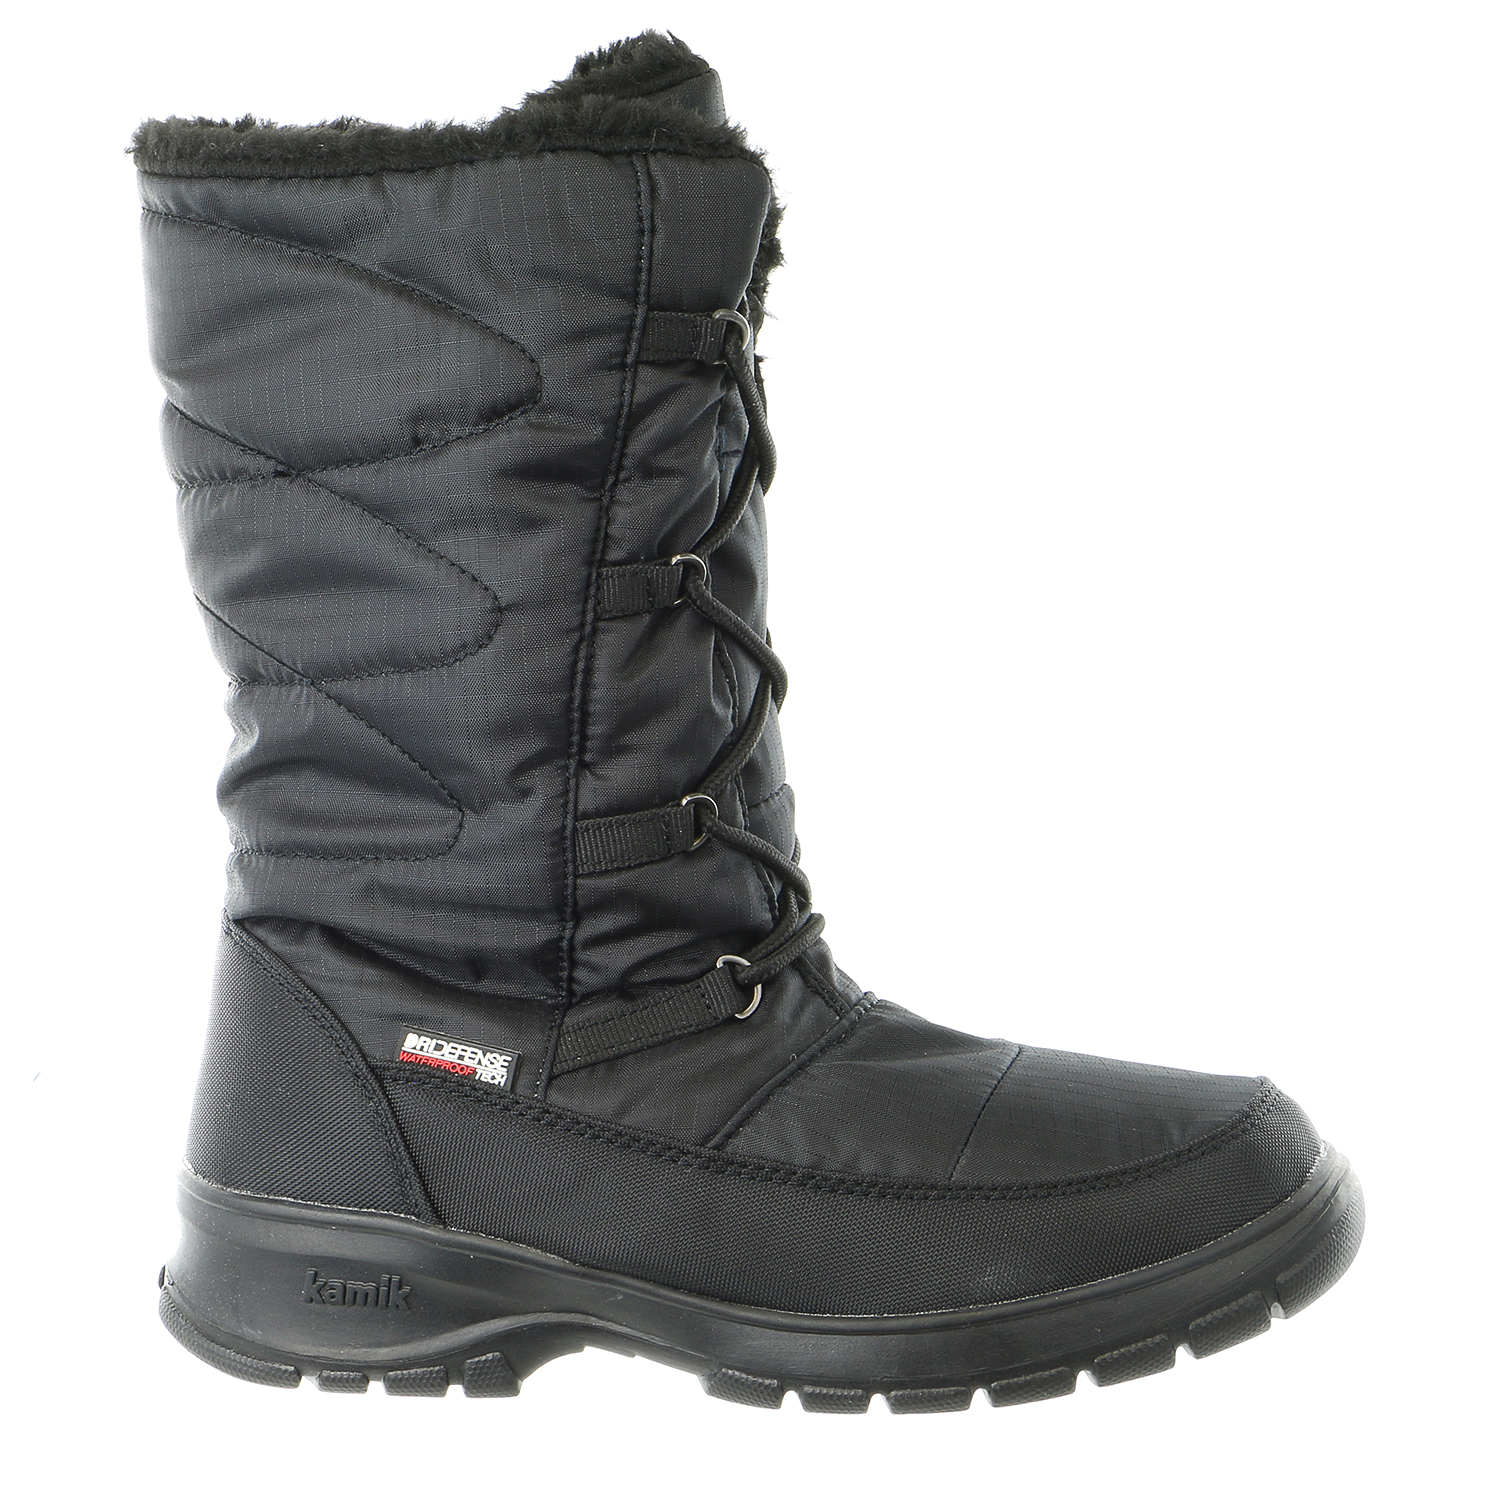 Kamik Phoenix Waterproof Insulated Winter Snow Boot Shoe - Womens